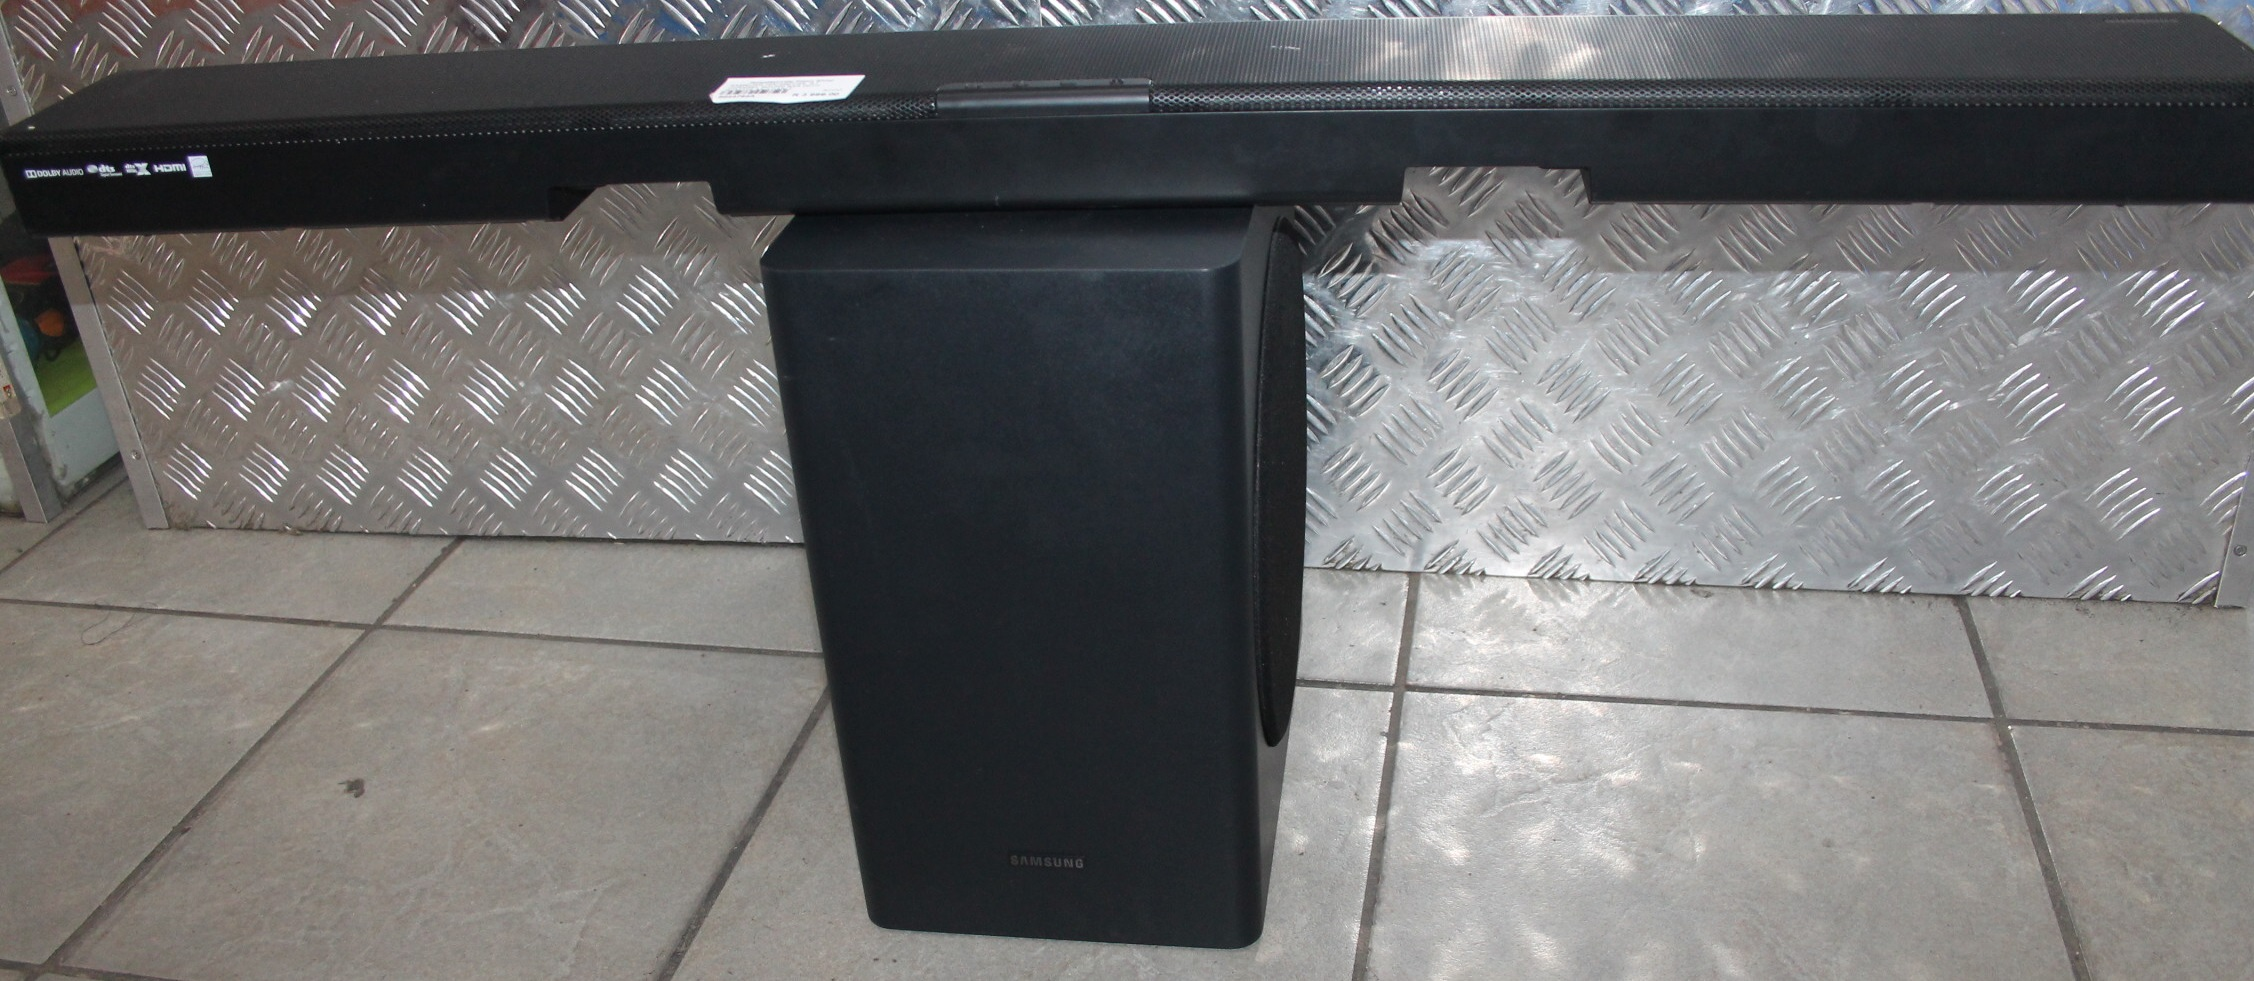 Samsung 5.1 channel sound bar with remote and cables #Rosettenvillepawnshop